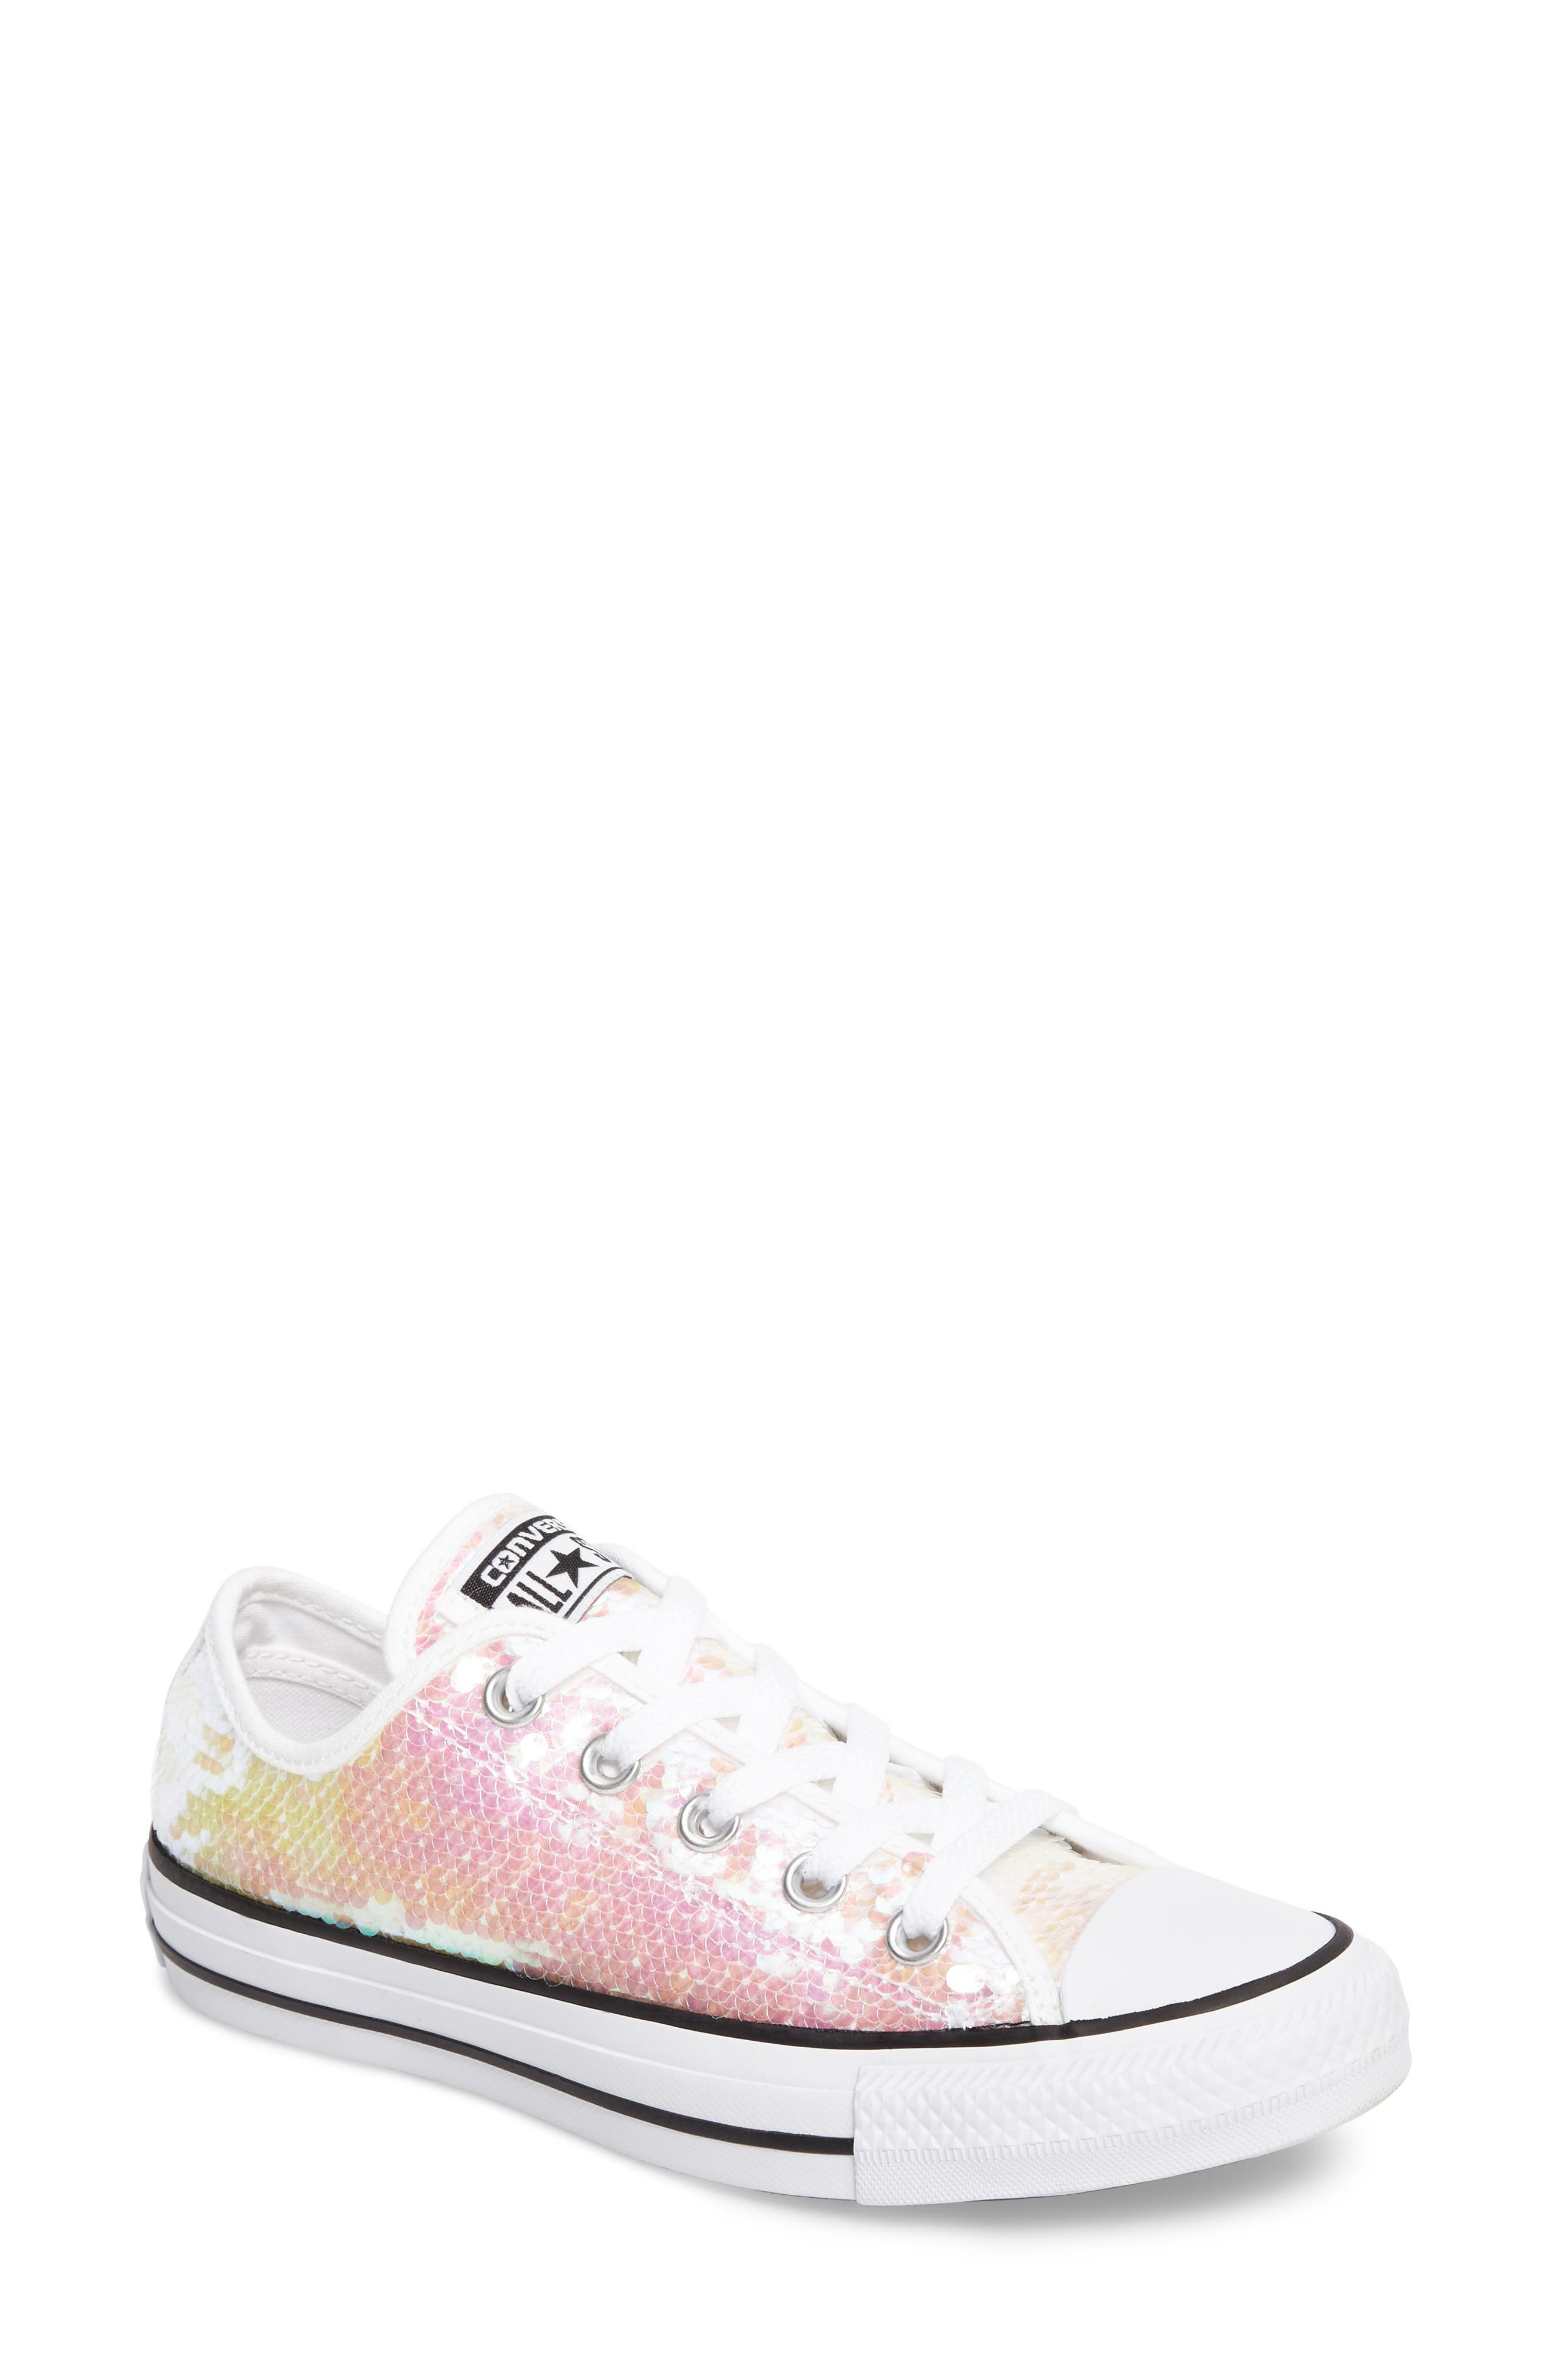 Main Image - Converse Chuck Taylor® All Star® Sequin Low Top Sneaker (Women)